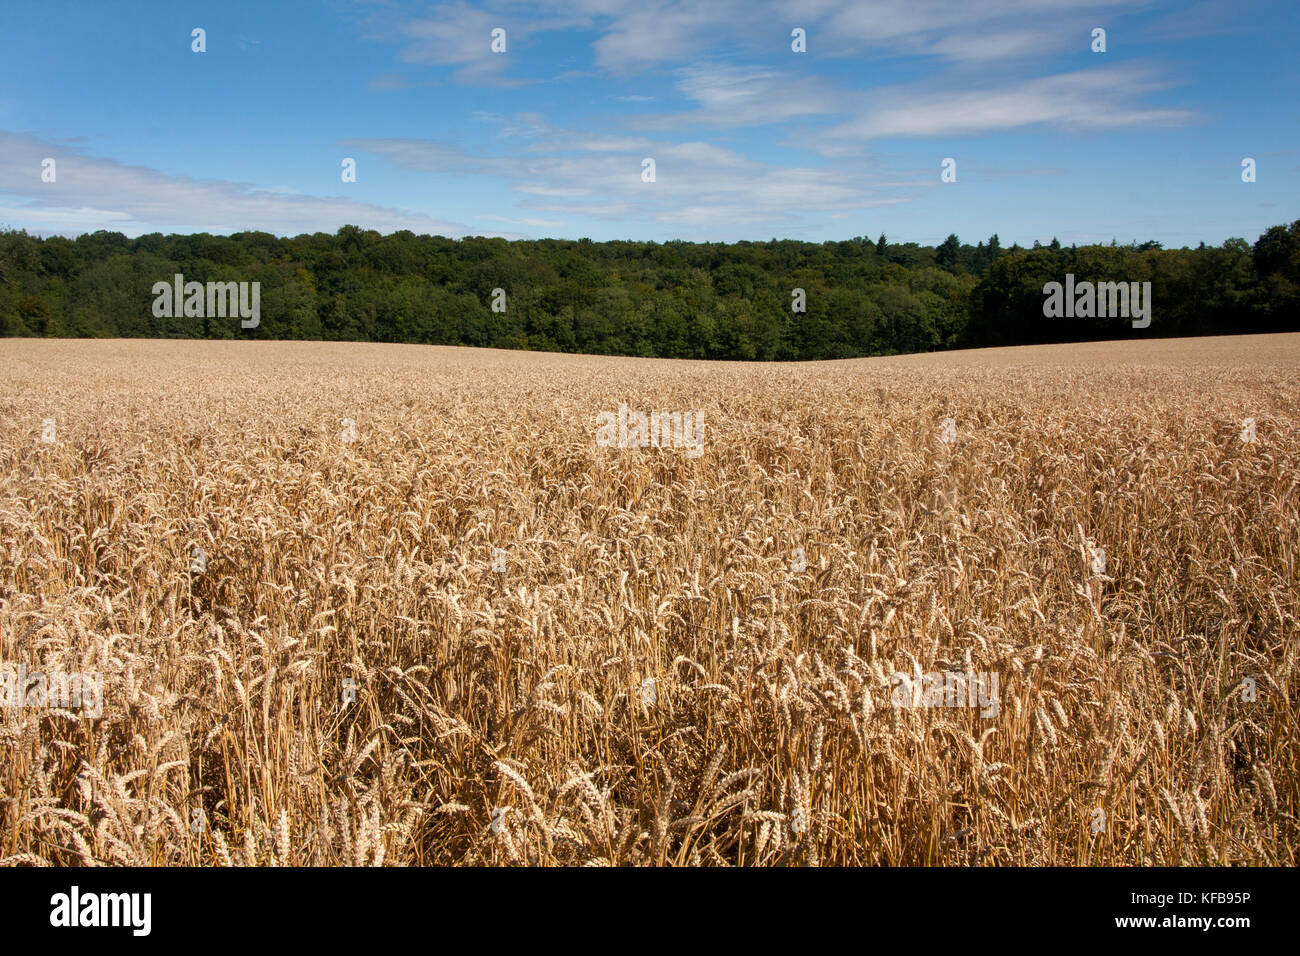 Wheatfiields in the Chilterns at  Tylers Green, Buckinghamshire, England - Stock Image